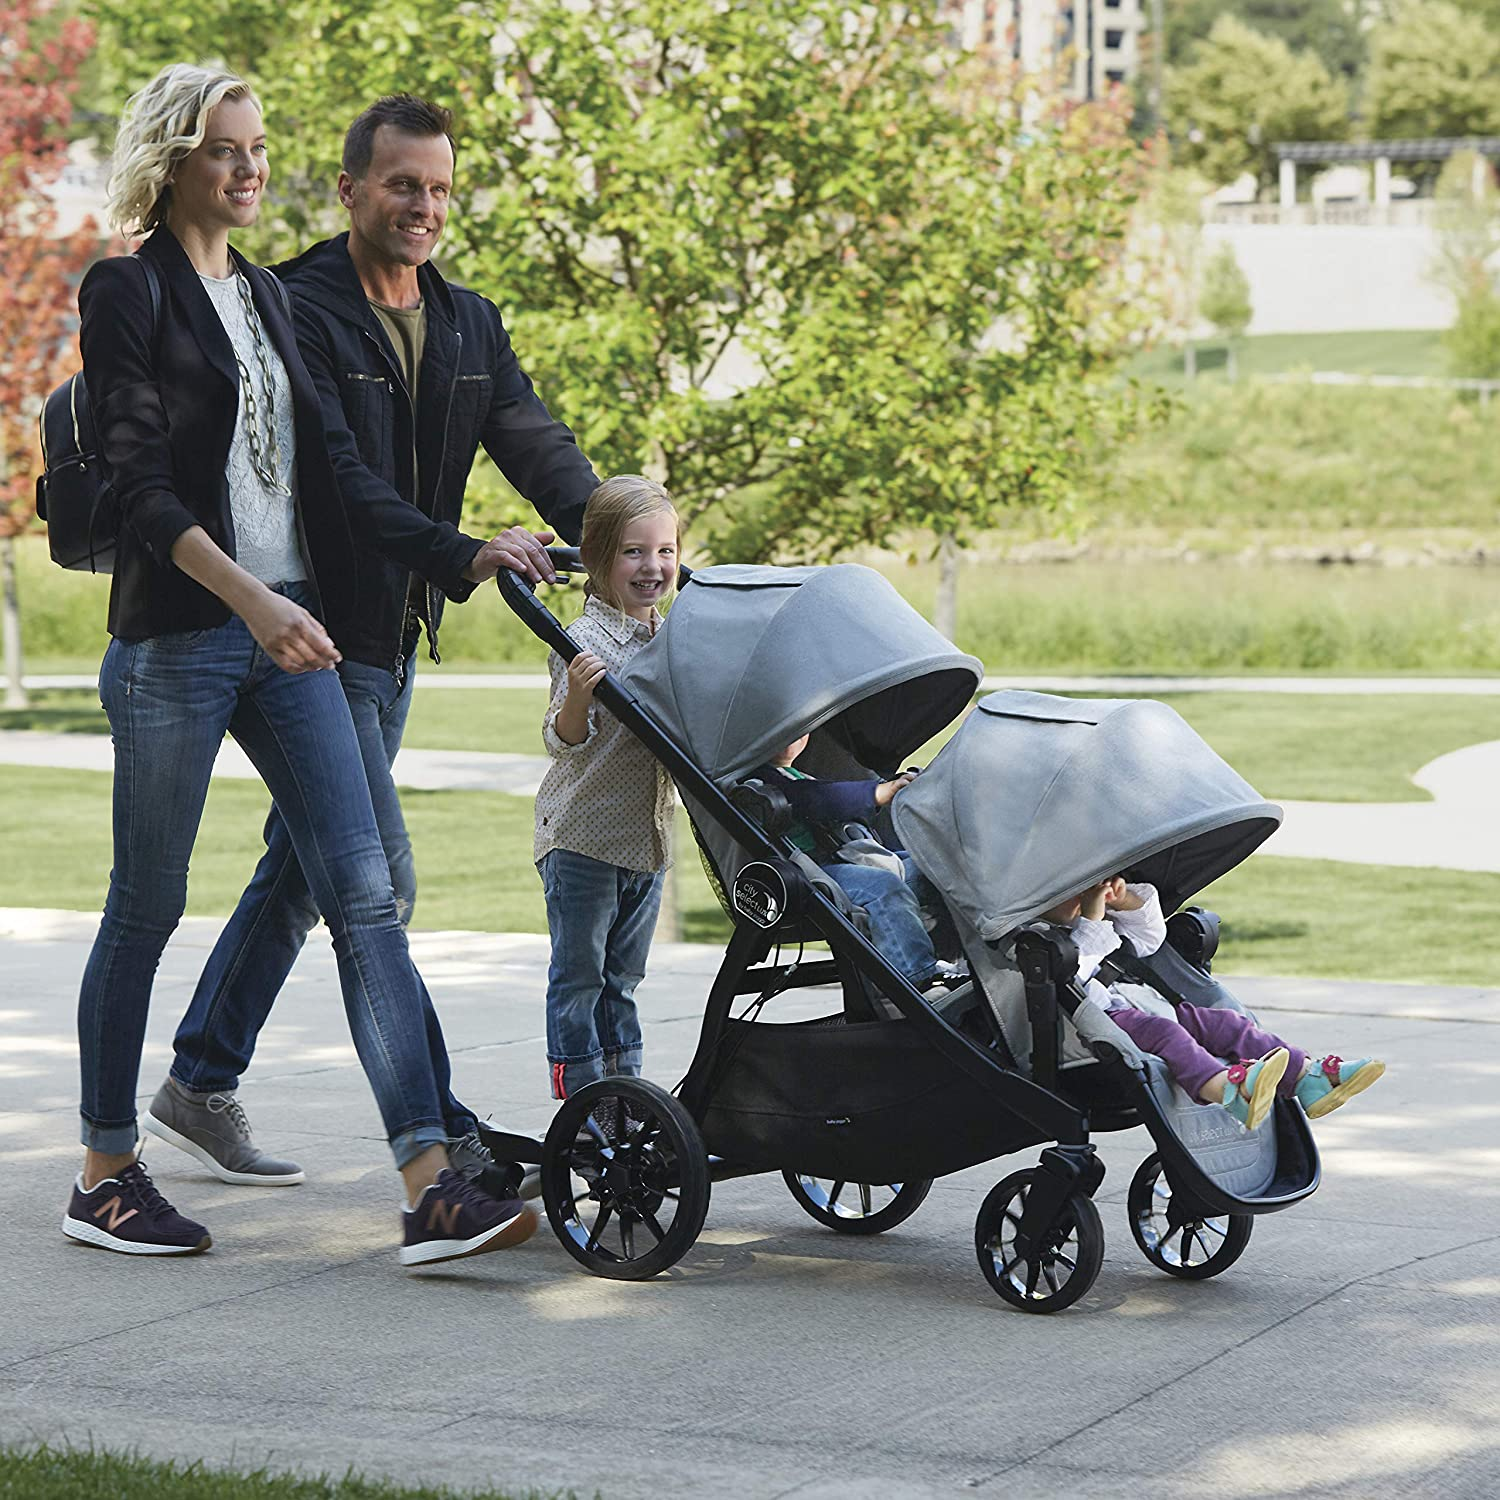 Baby Jogger Glider Board for City Mini 2, City Mini 2 Double, City Mini GT2, City Mini GT2 Double, City Select, and City Select LUX Strollers, Black